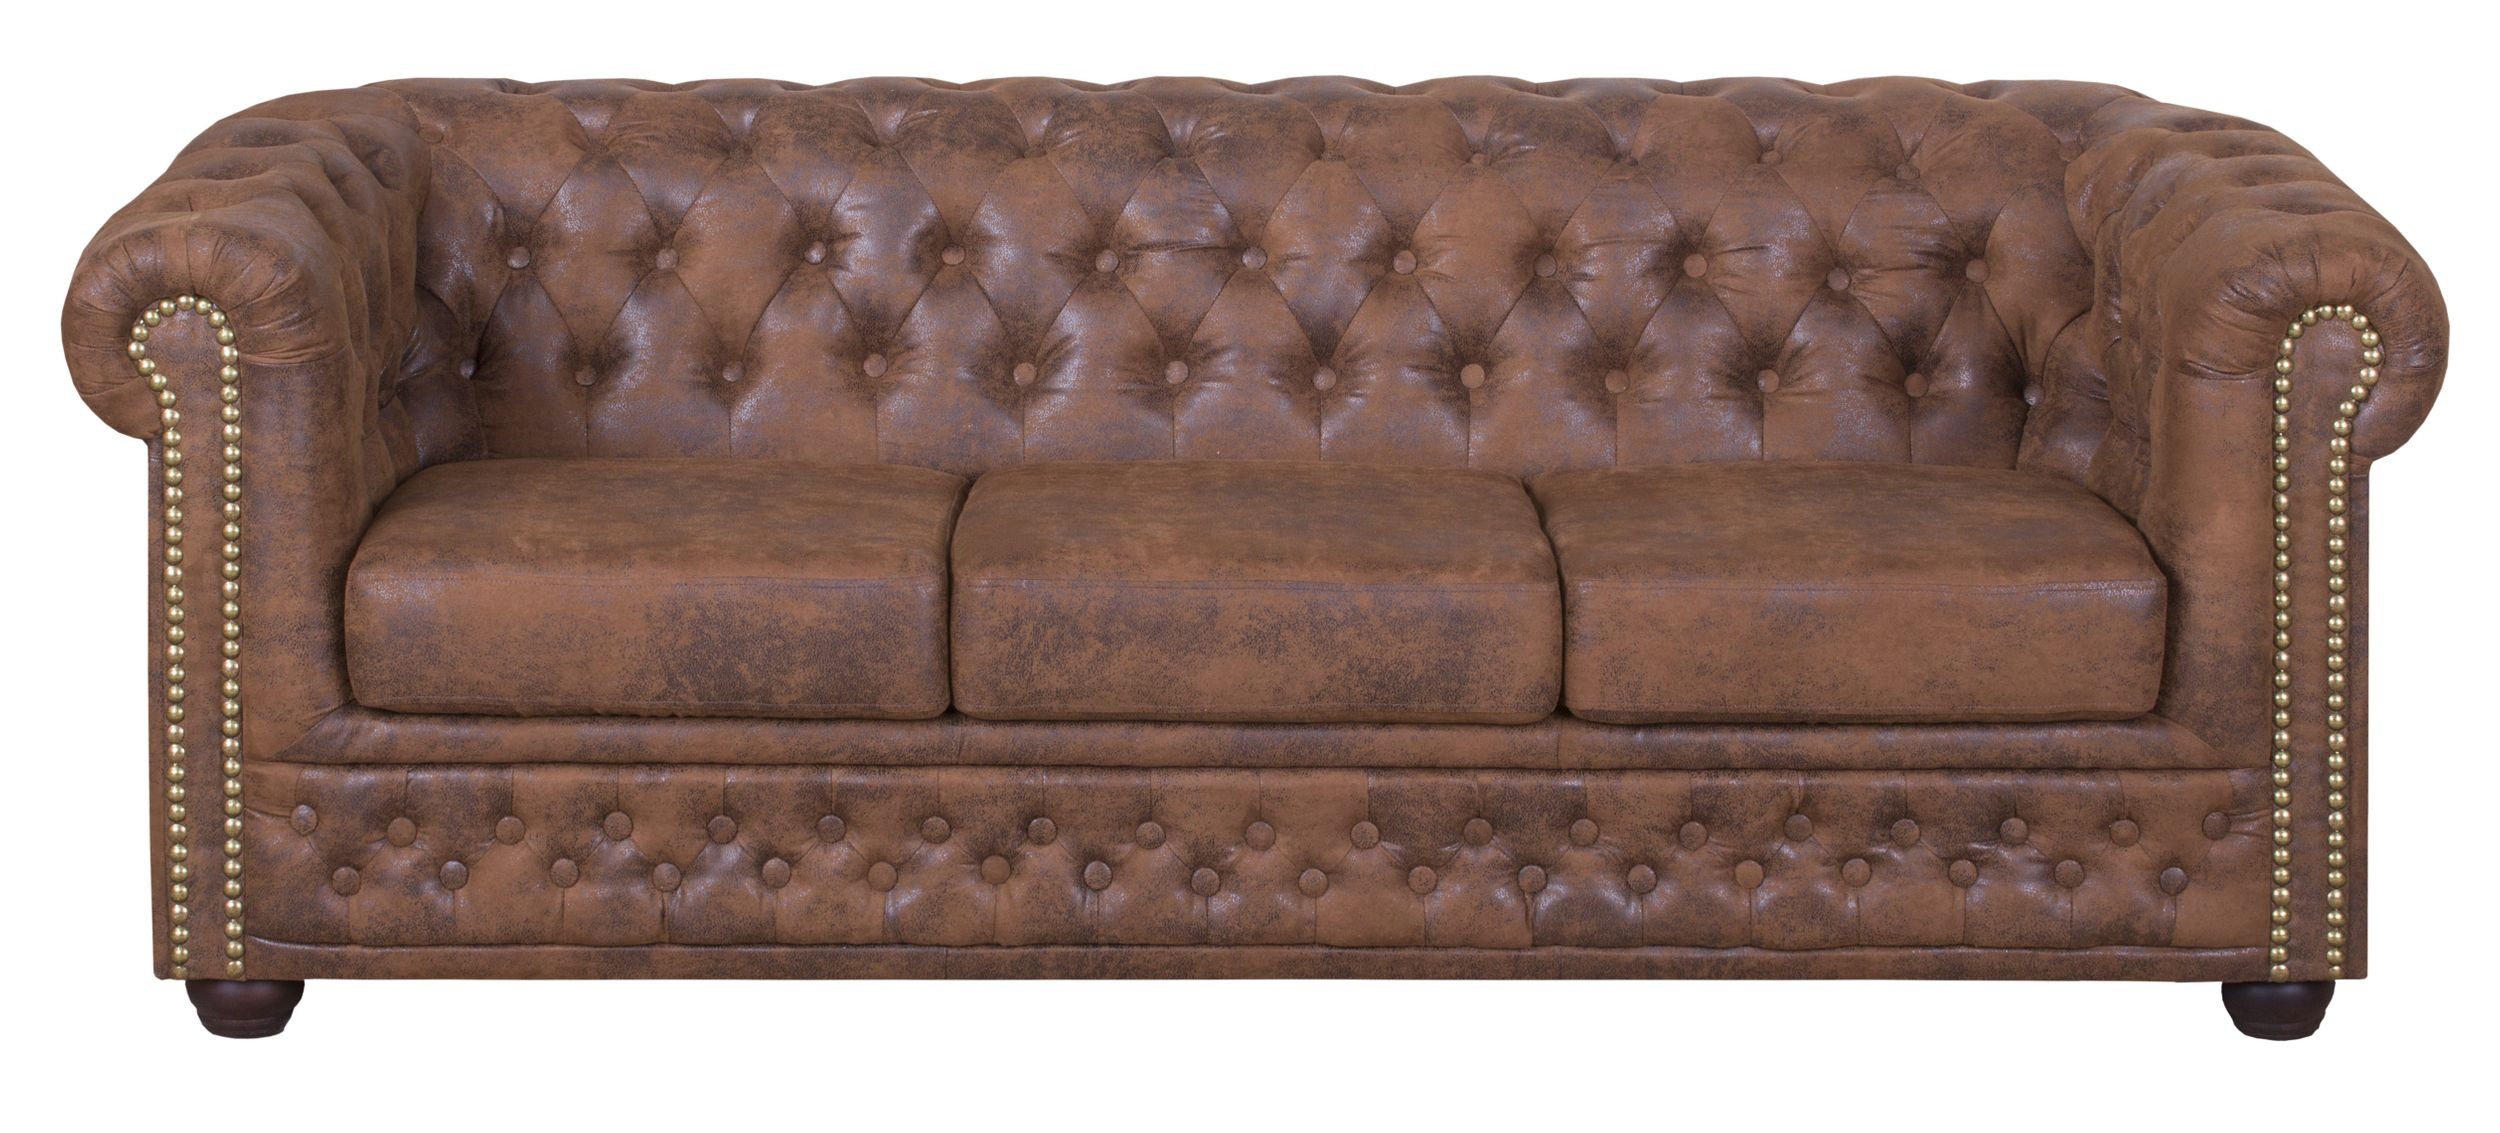 Edles Chesterfield Sofa 3 Sitzer In Mikrofaser Vintage Braun Couch